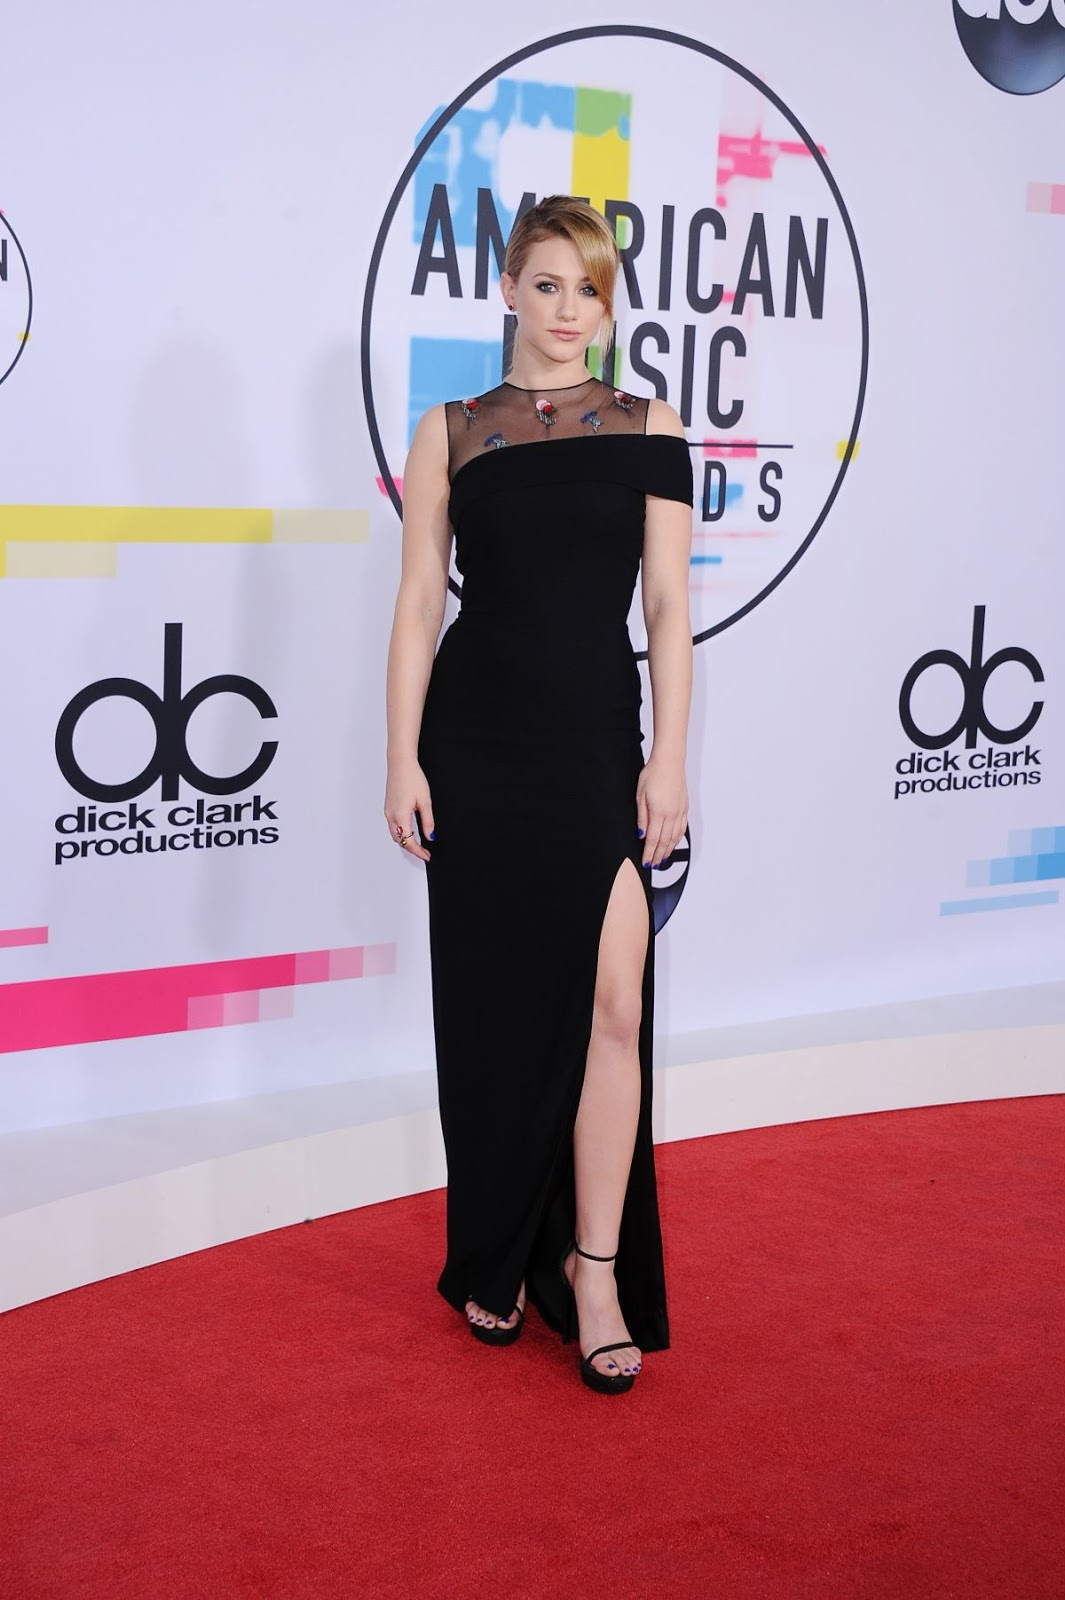 Photos of TV Actress Lili Reinhart at American Music Awards 2017 at Microsoft Theater in Los Angeles